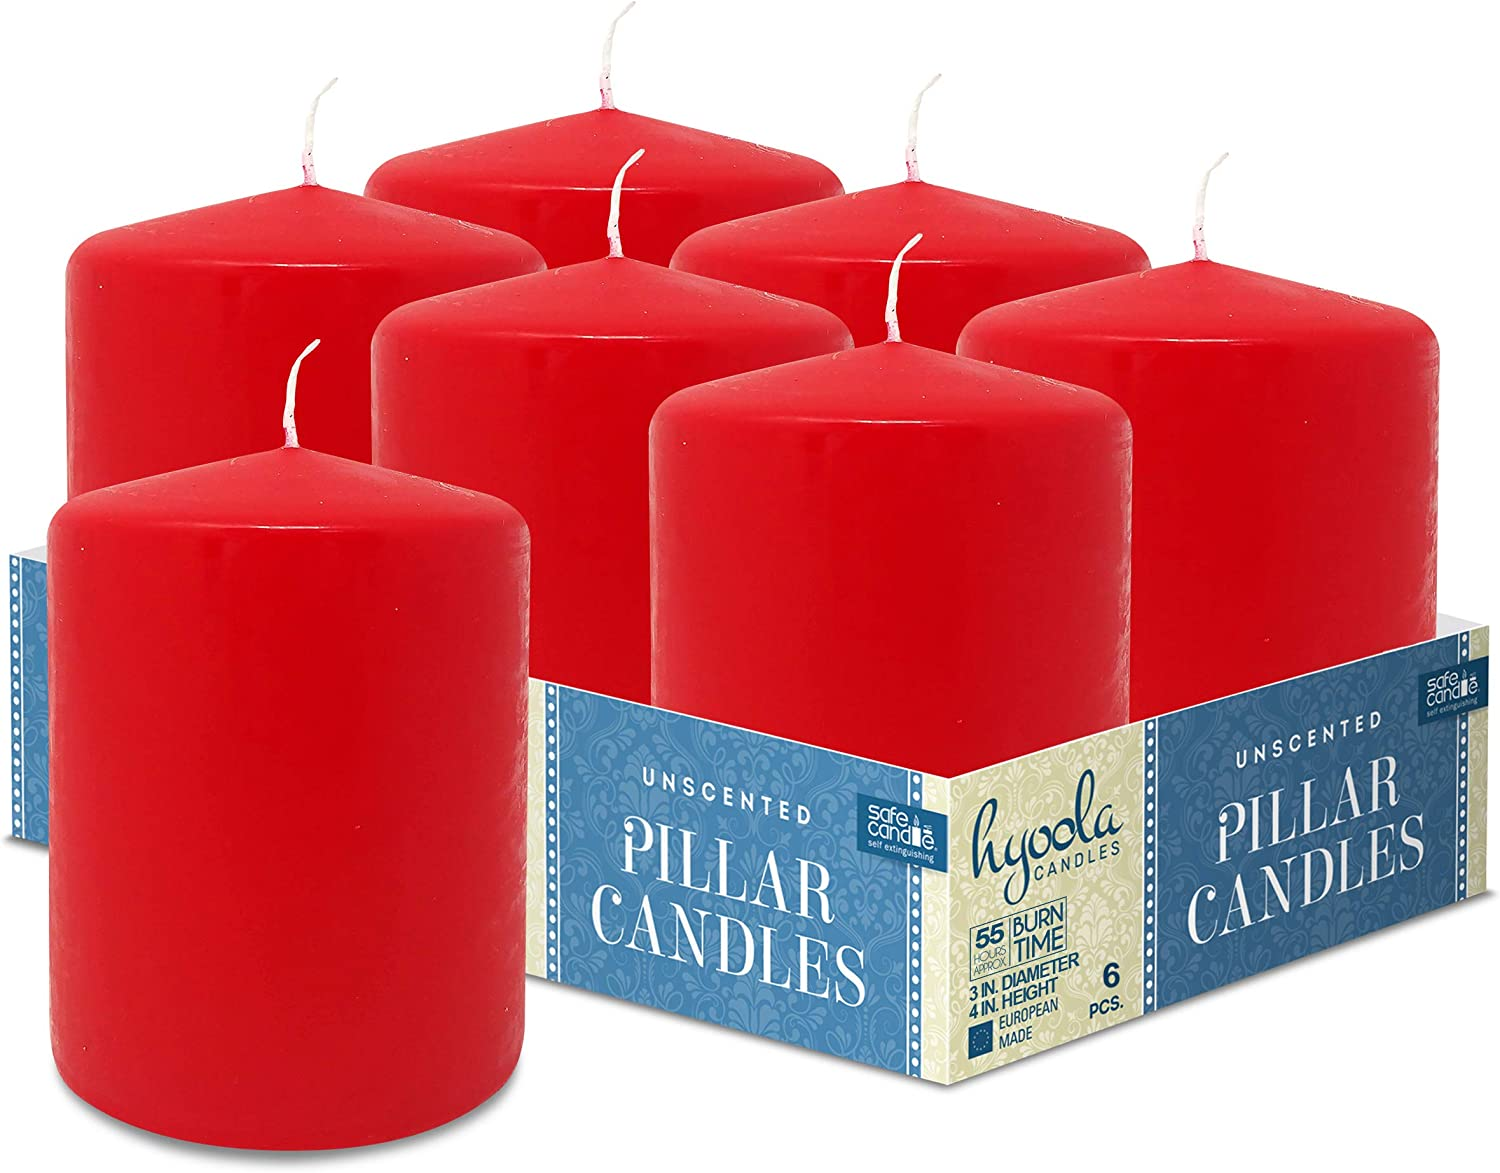 Hyoola Red Mail order Pillar Candles Inch - Unscented 3x4 Price reduction